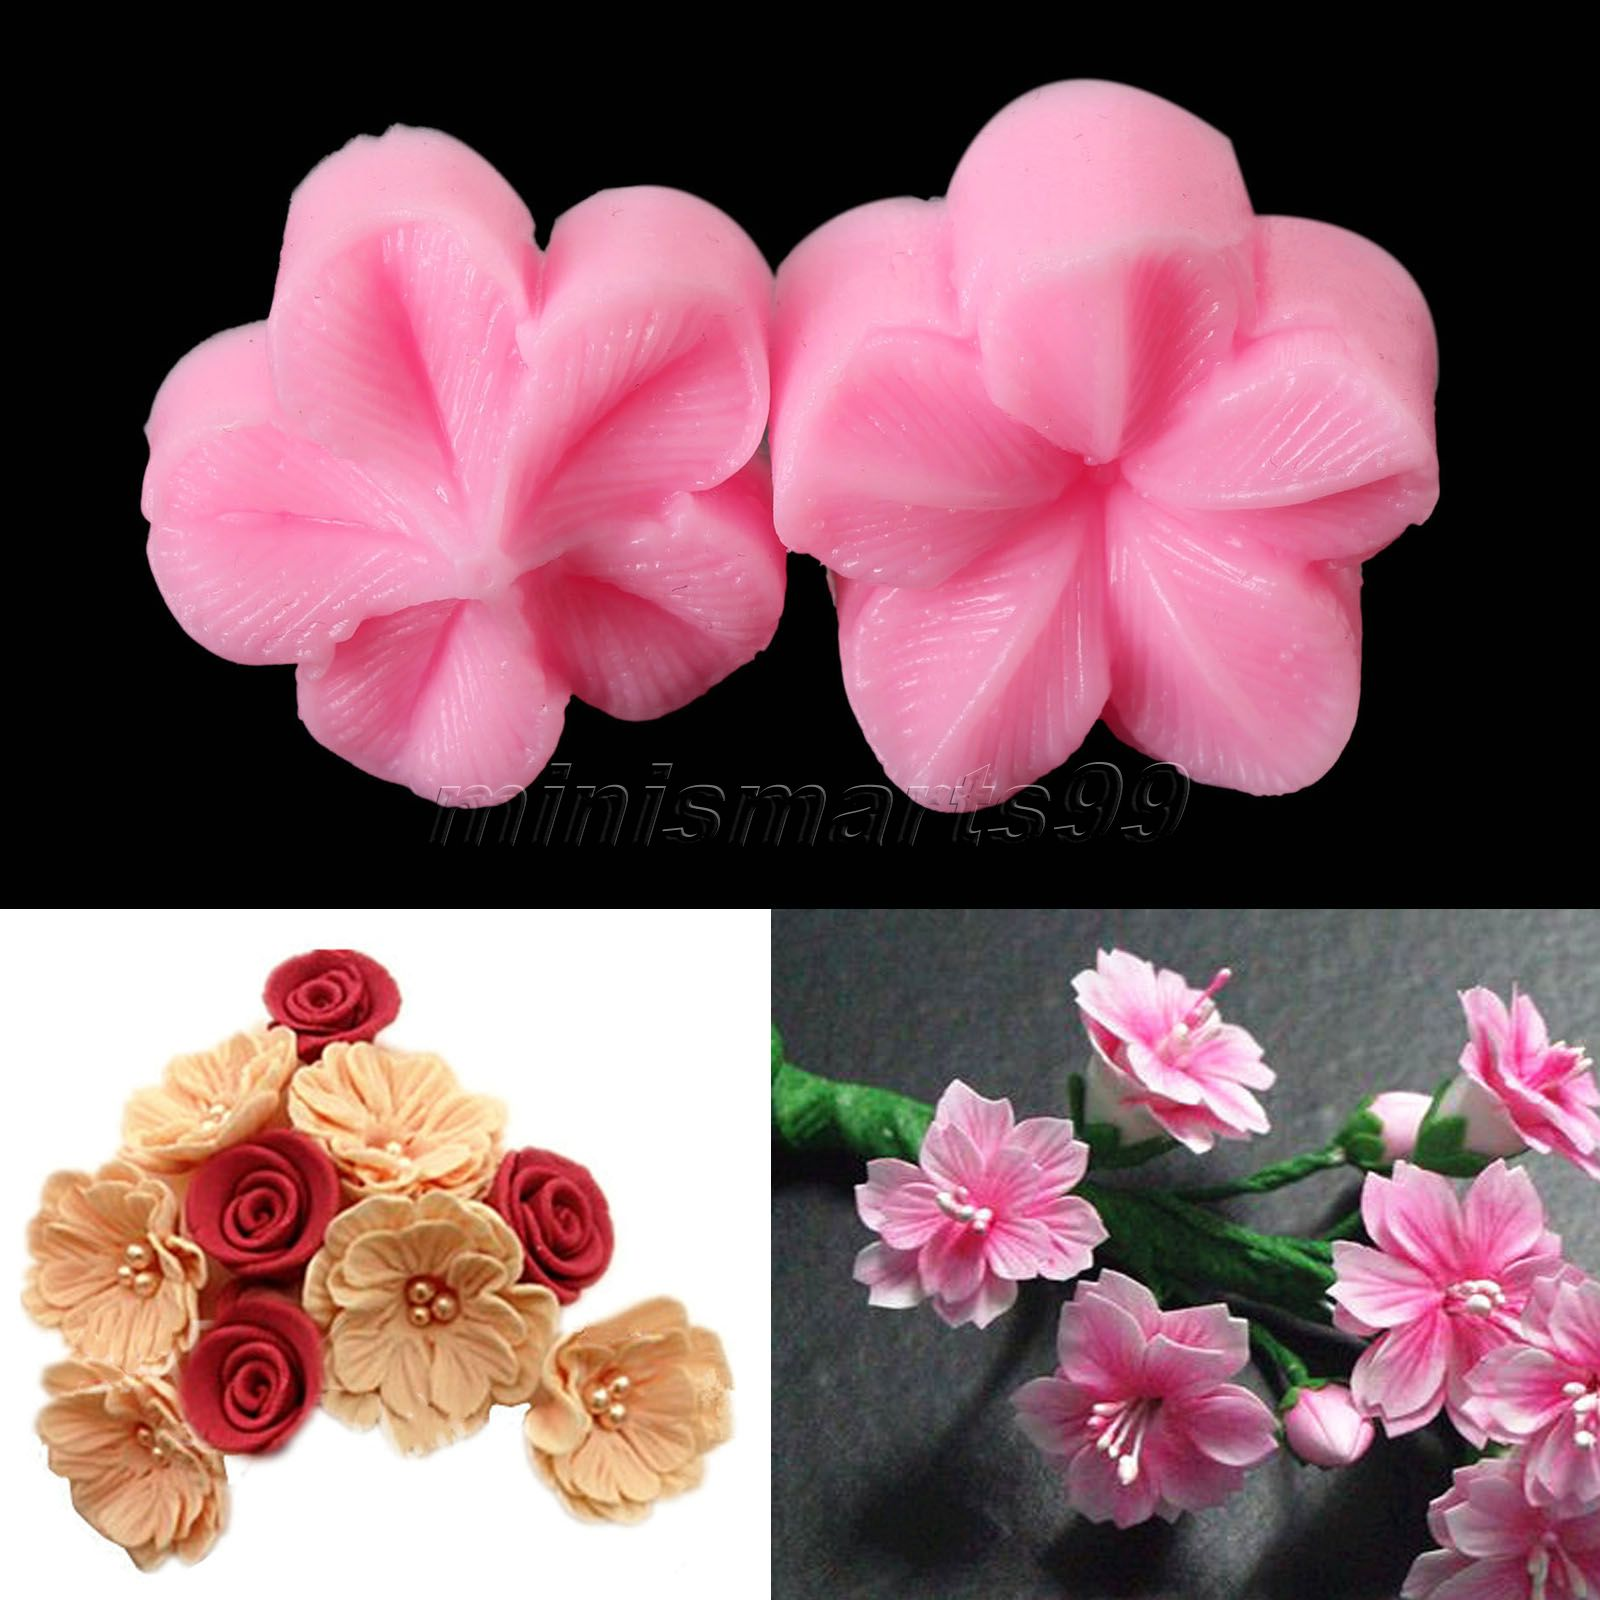 Chocolate Flowers Cake Decoration Telegraph : Online Get Cheap Simple Cake Designs -Aliexpress.com ...